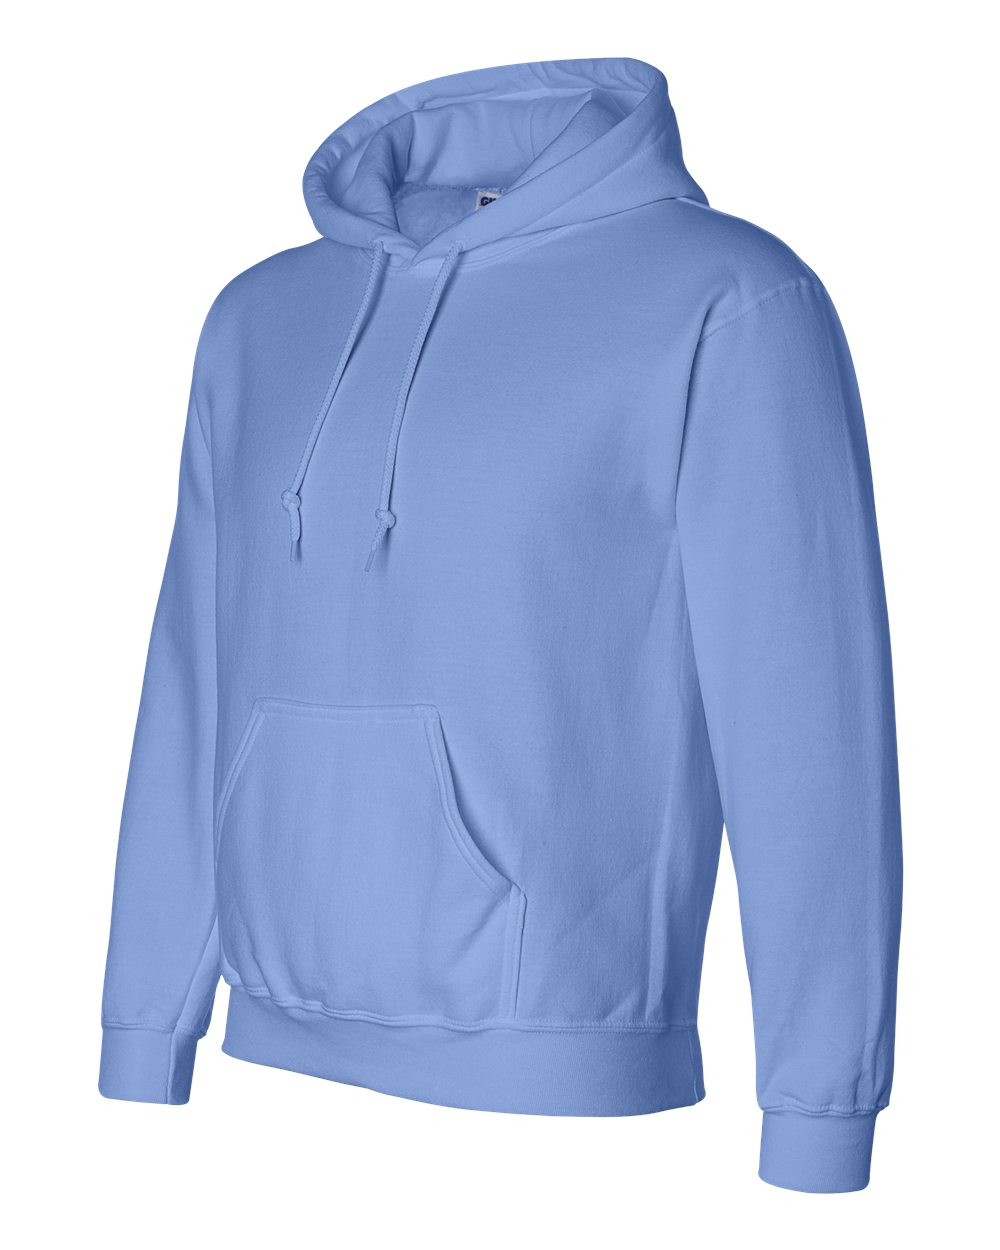 Gildan Ultra Blend Hooded sweater GIL12500 Carolina Blue